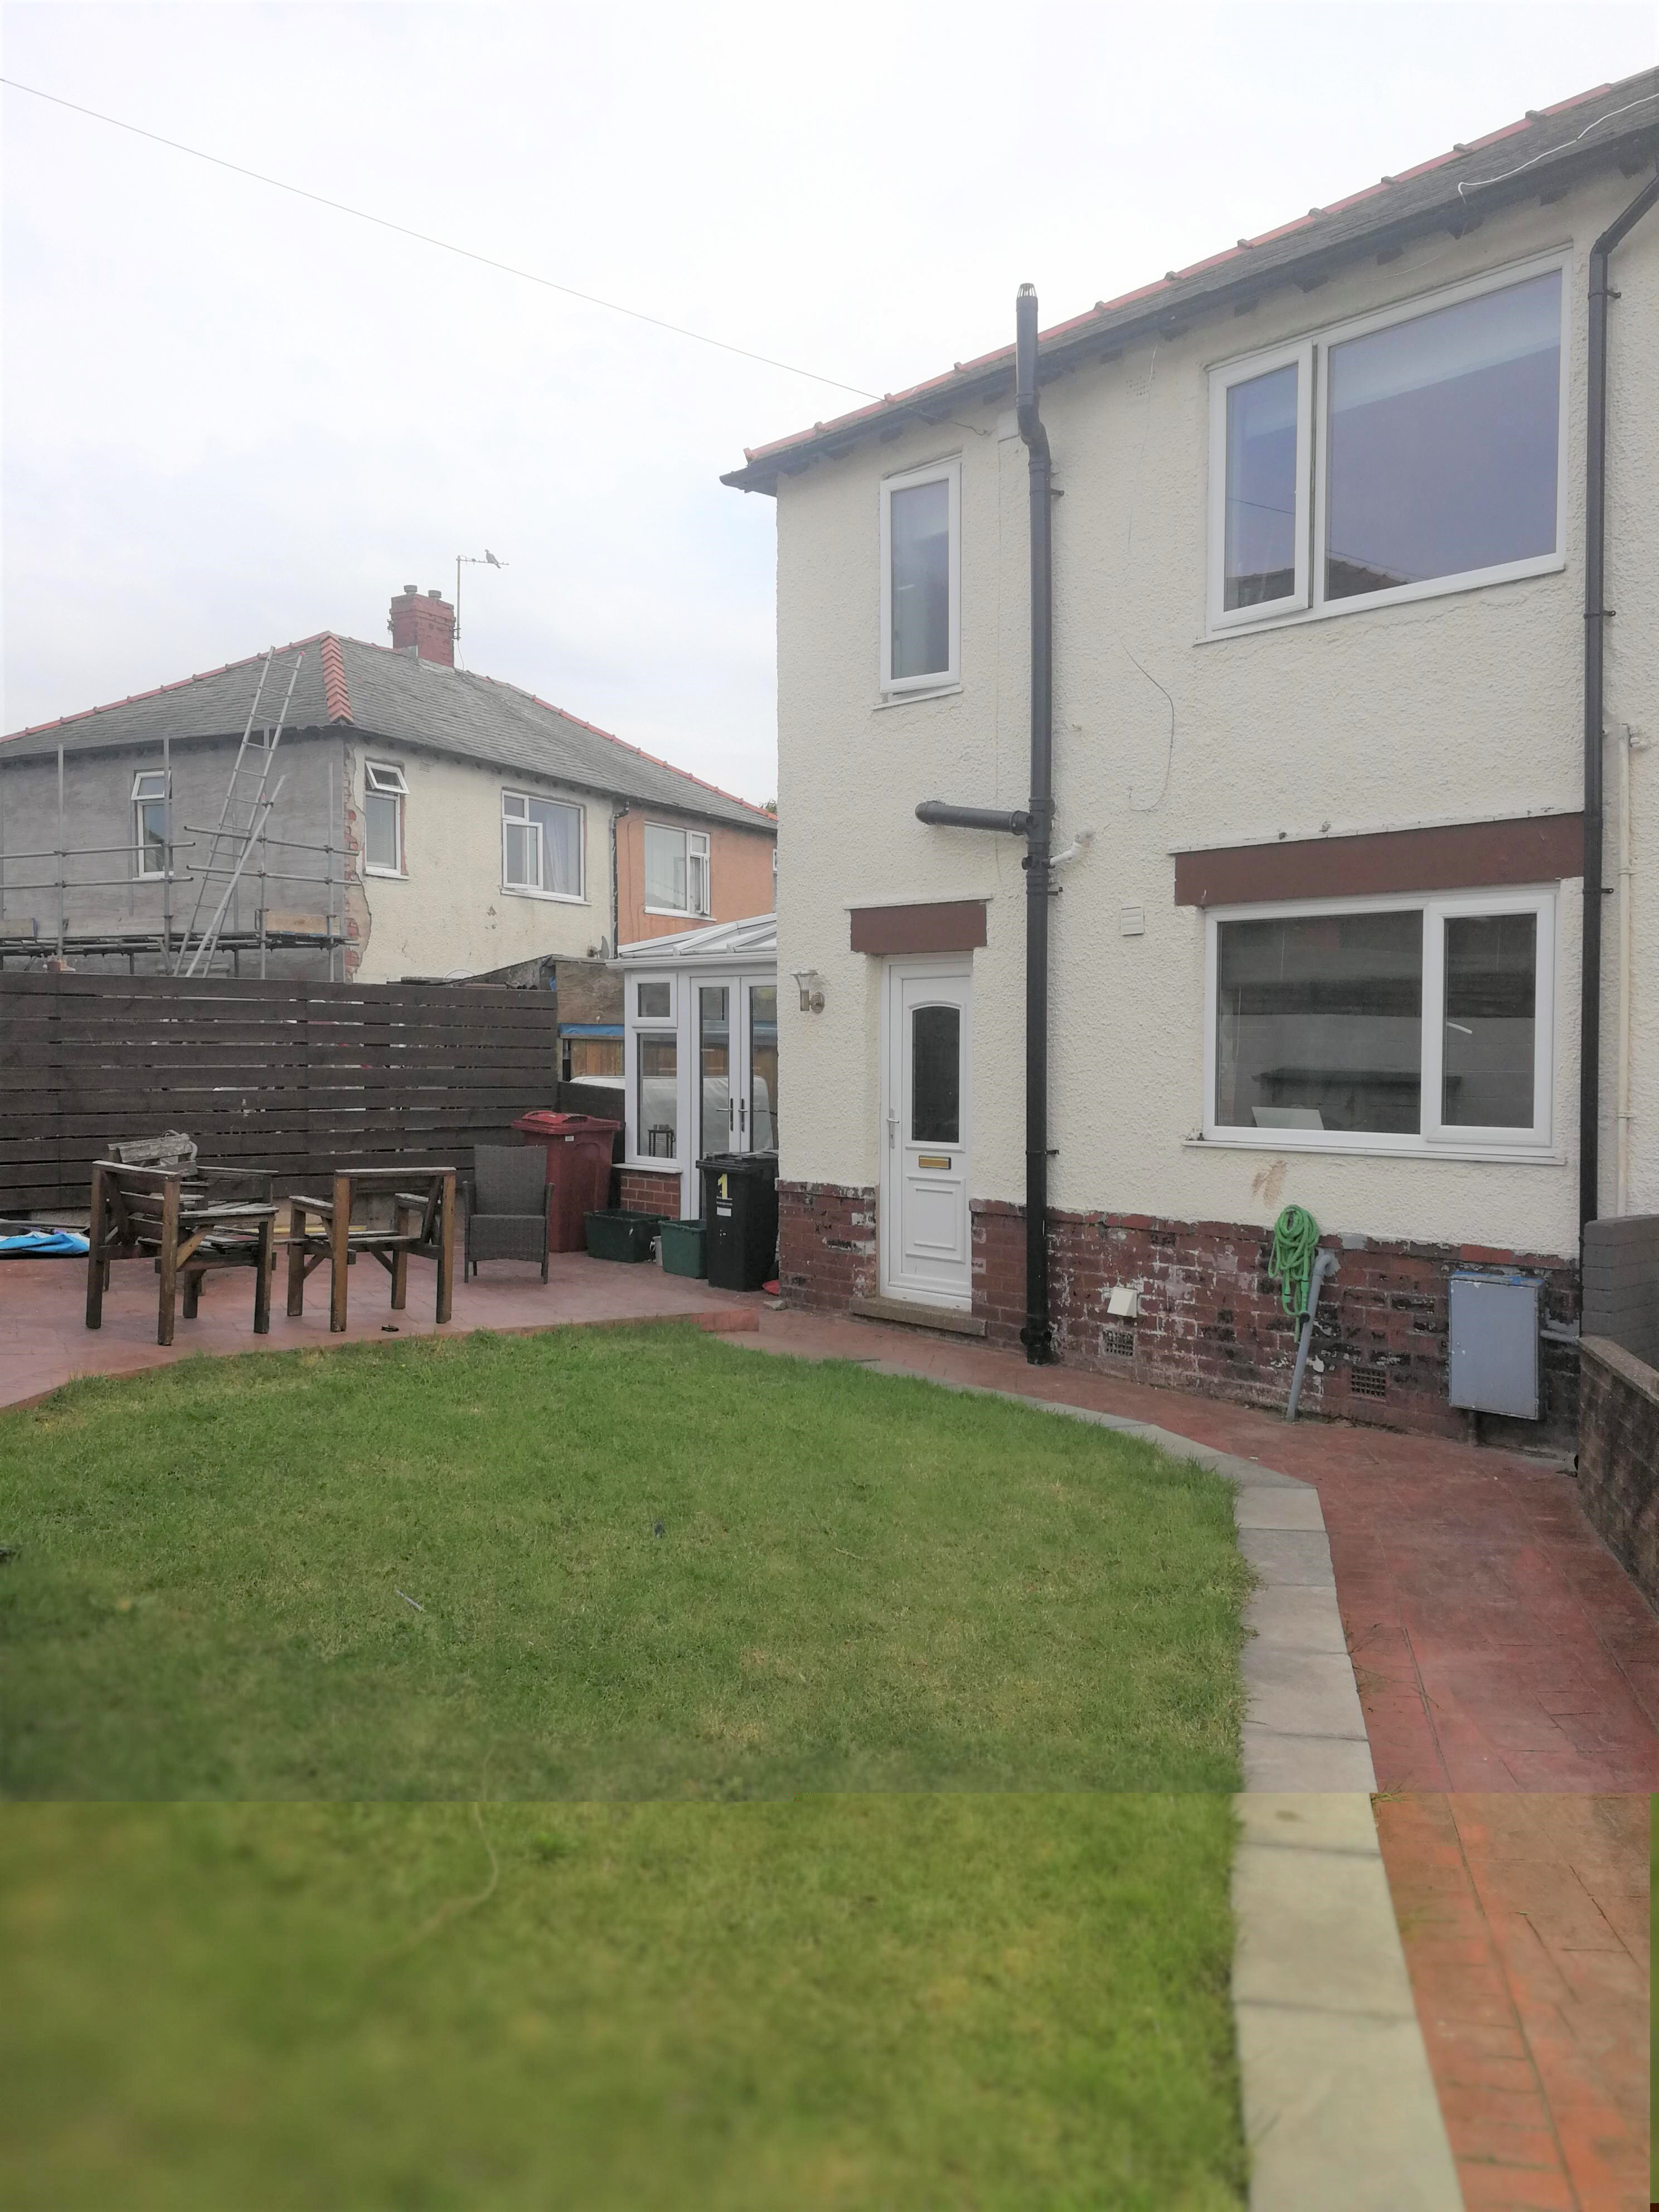 1 Rochester Place, Barrow-in-Furness